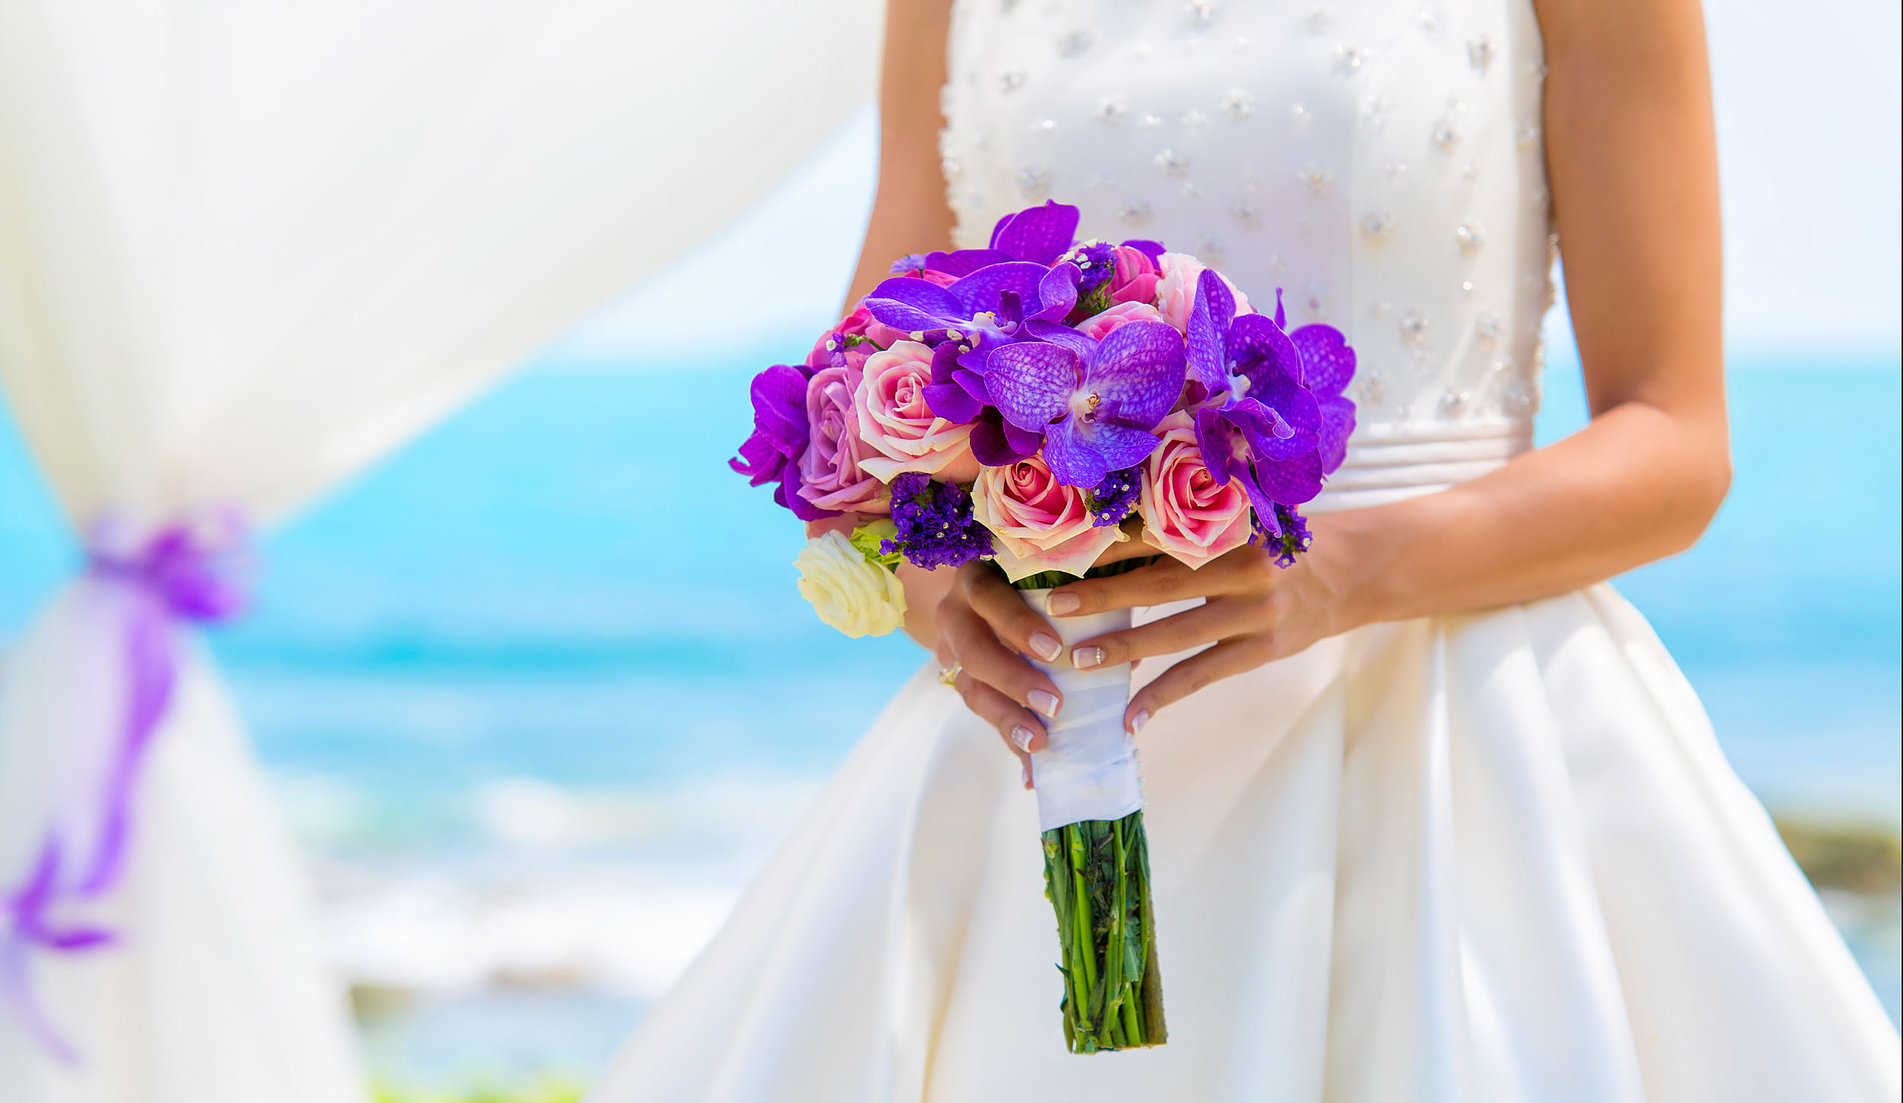 Koh Samui Wedding Packages 展示照片-1